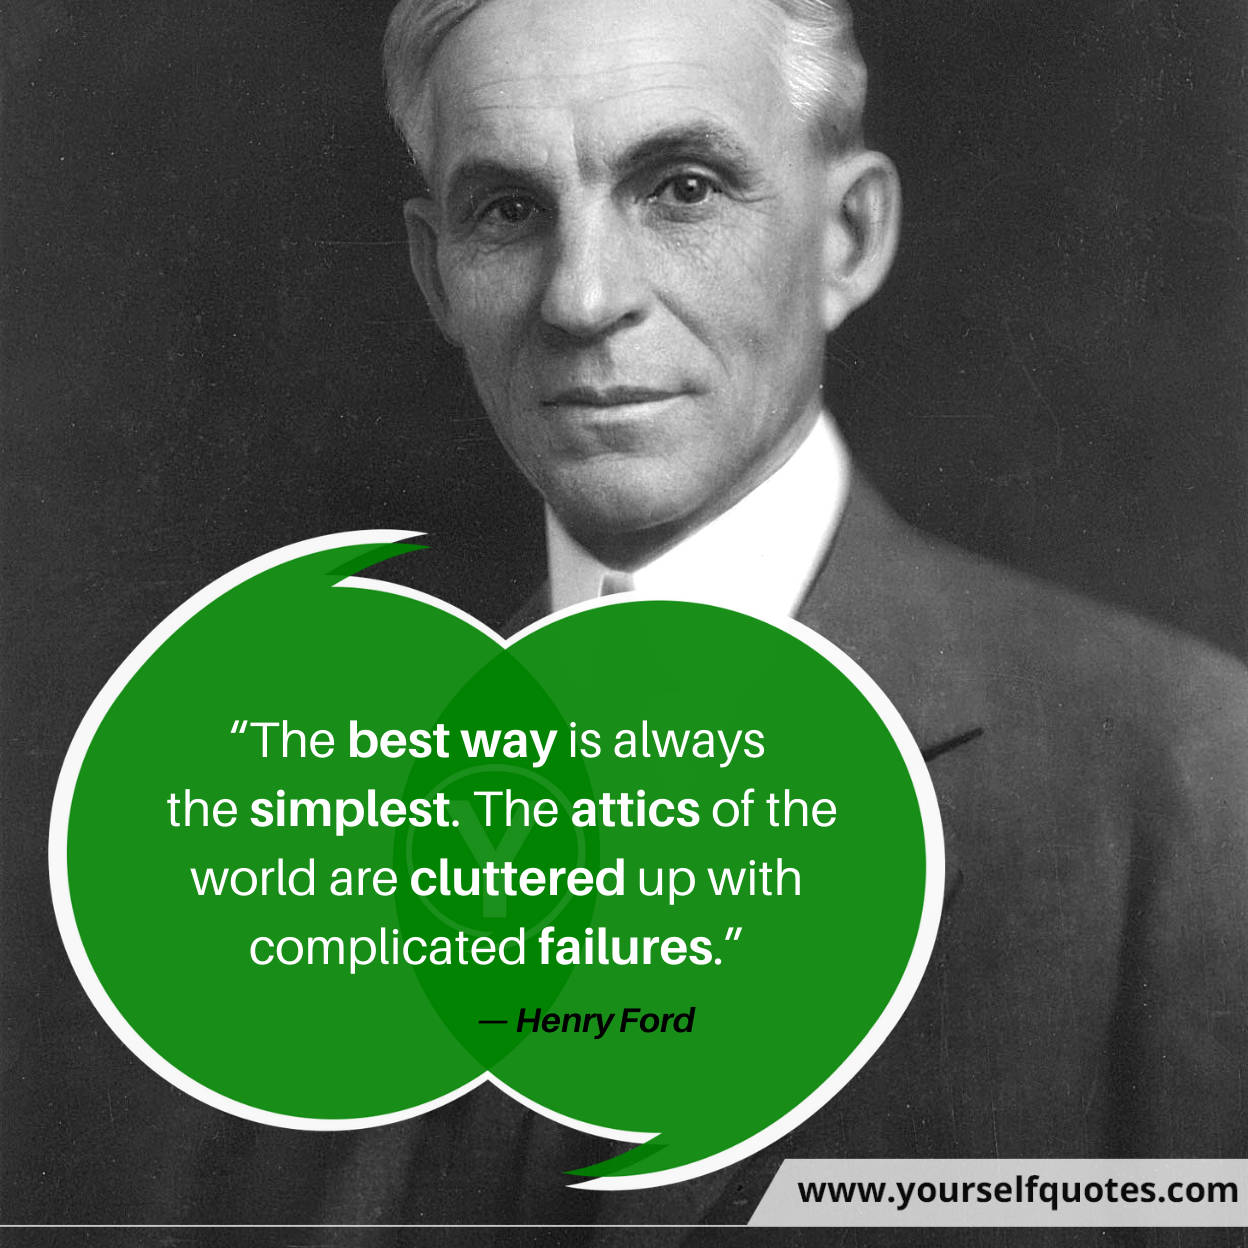 Quotes By Henry Ford Images